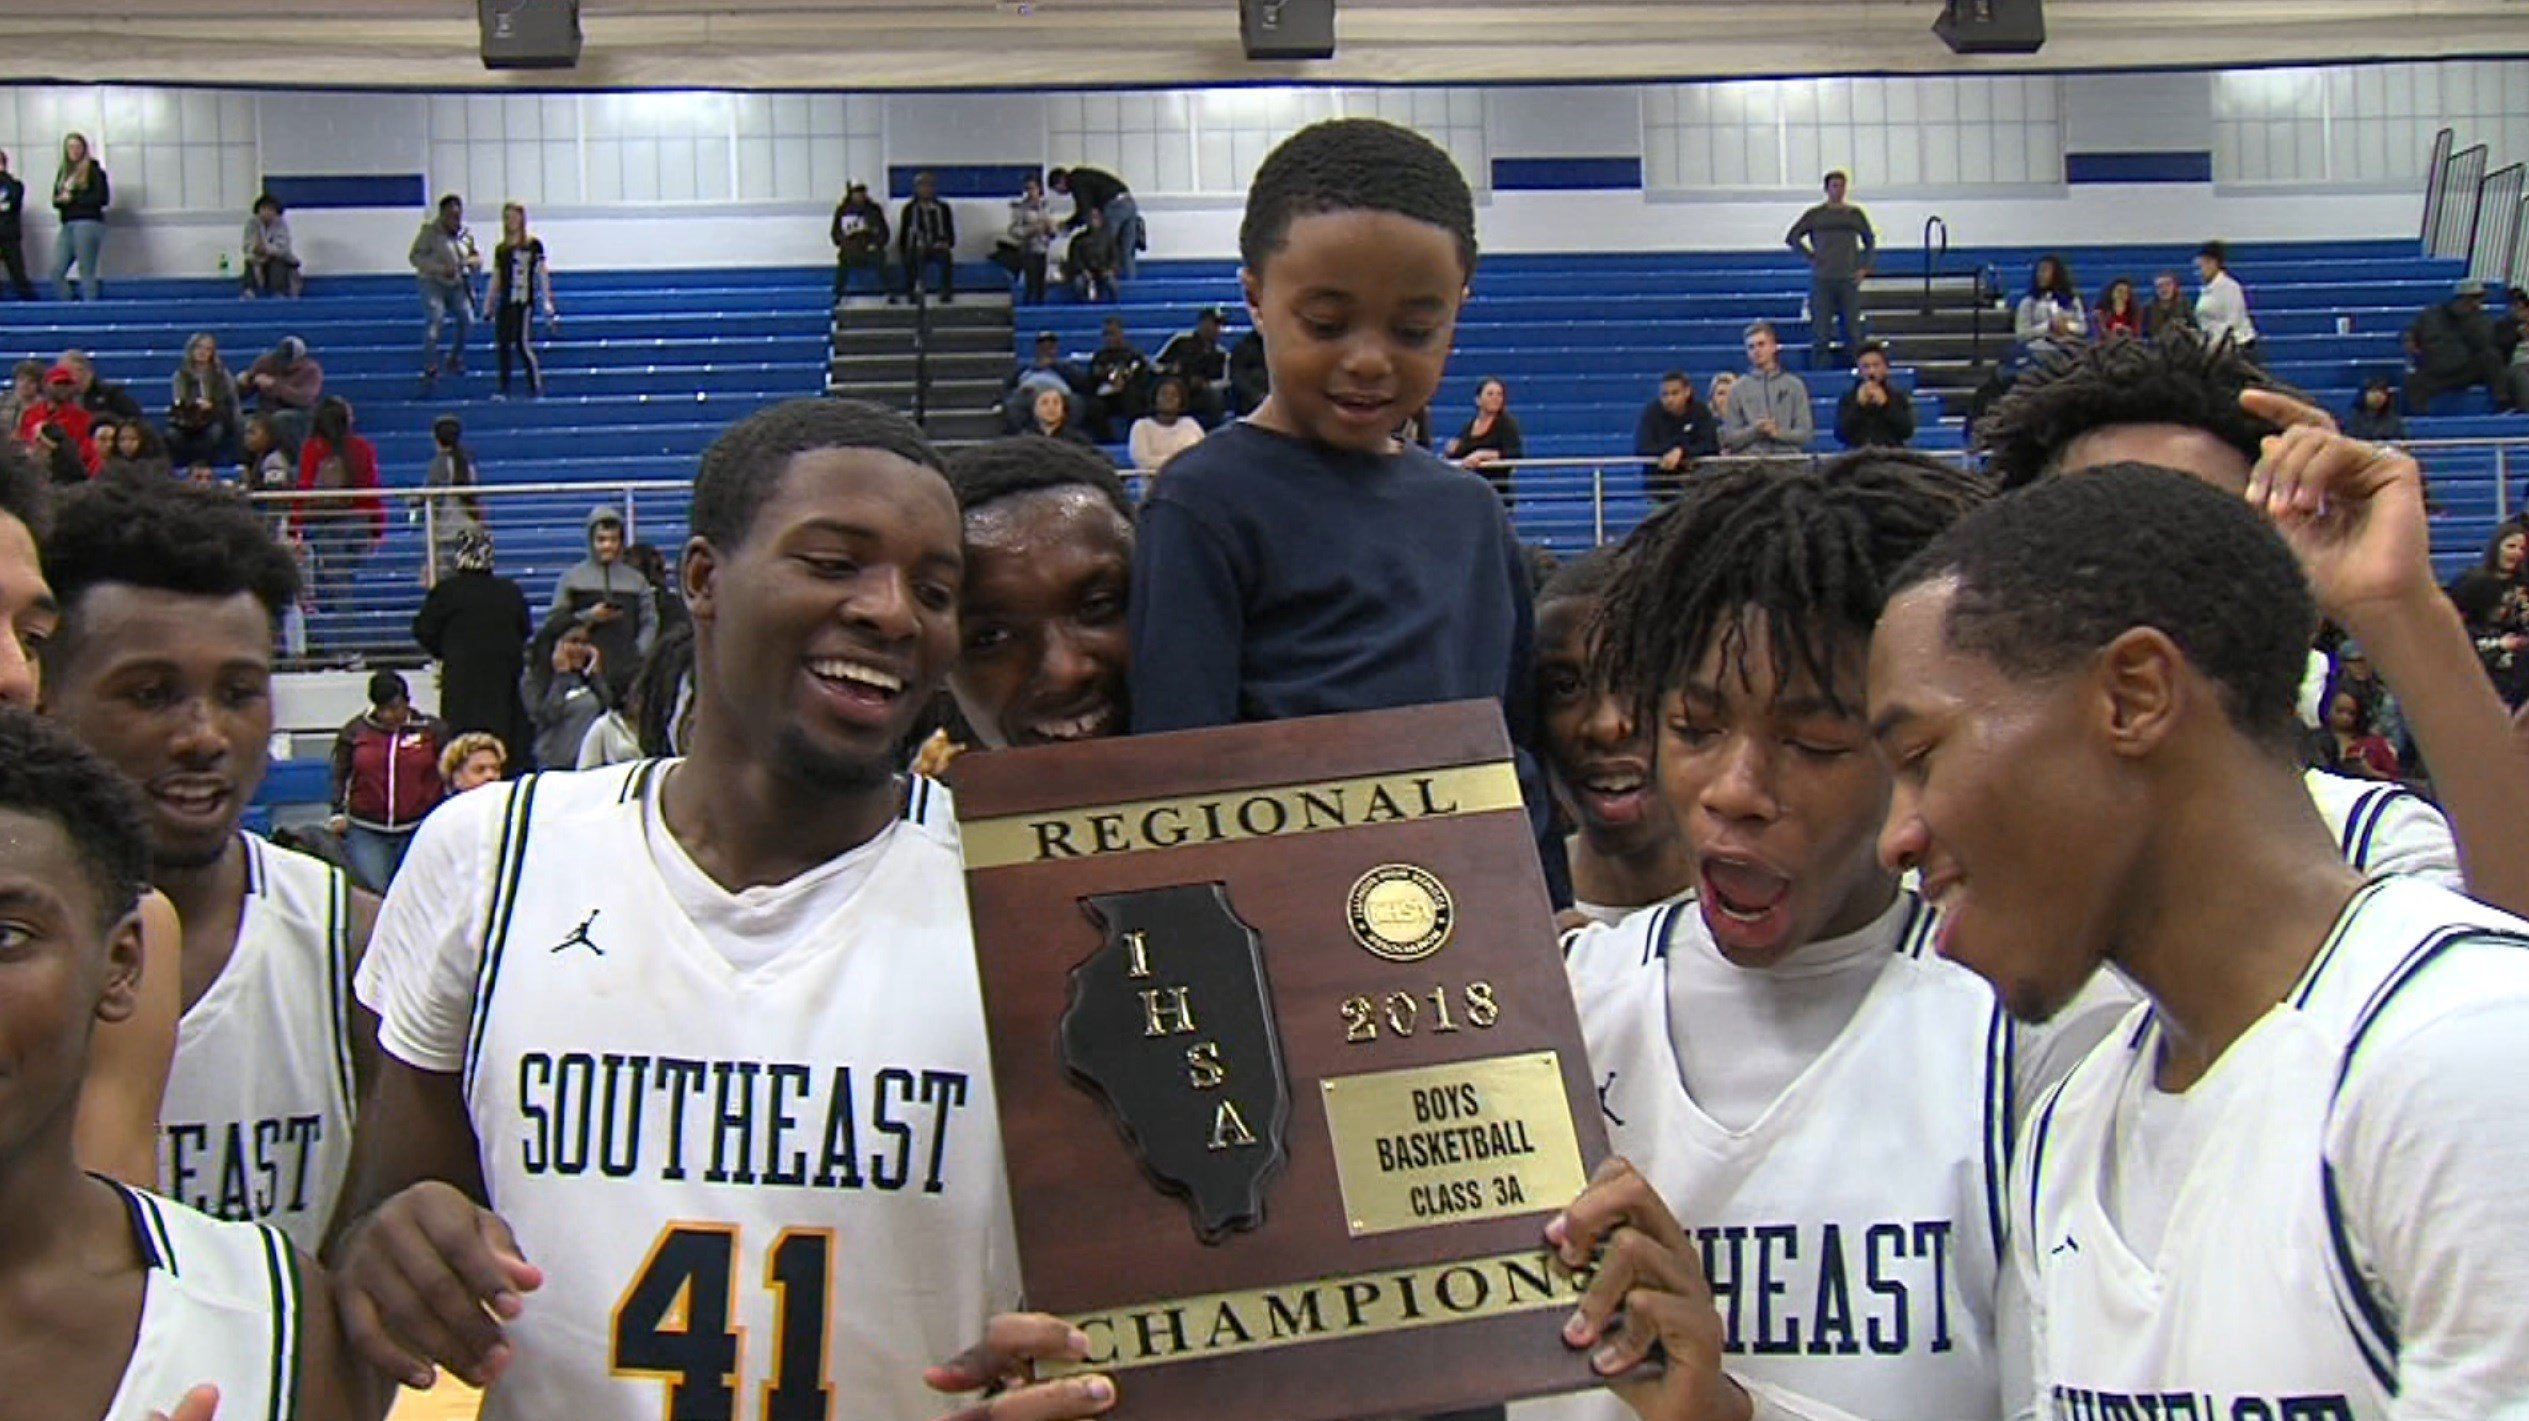 Southeast celebrates its fifth regional championship since coach Lawrence Thomas took over in 2008-09.